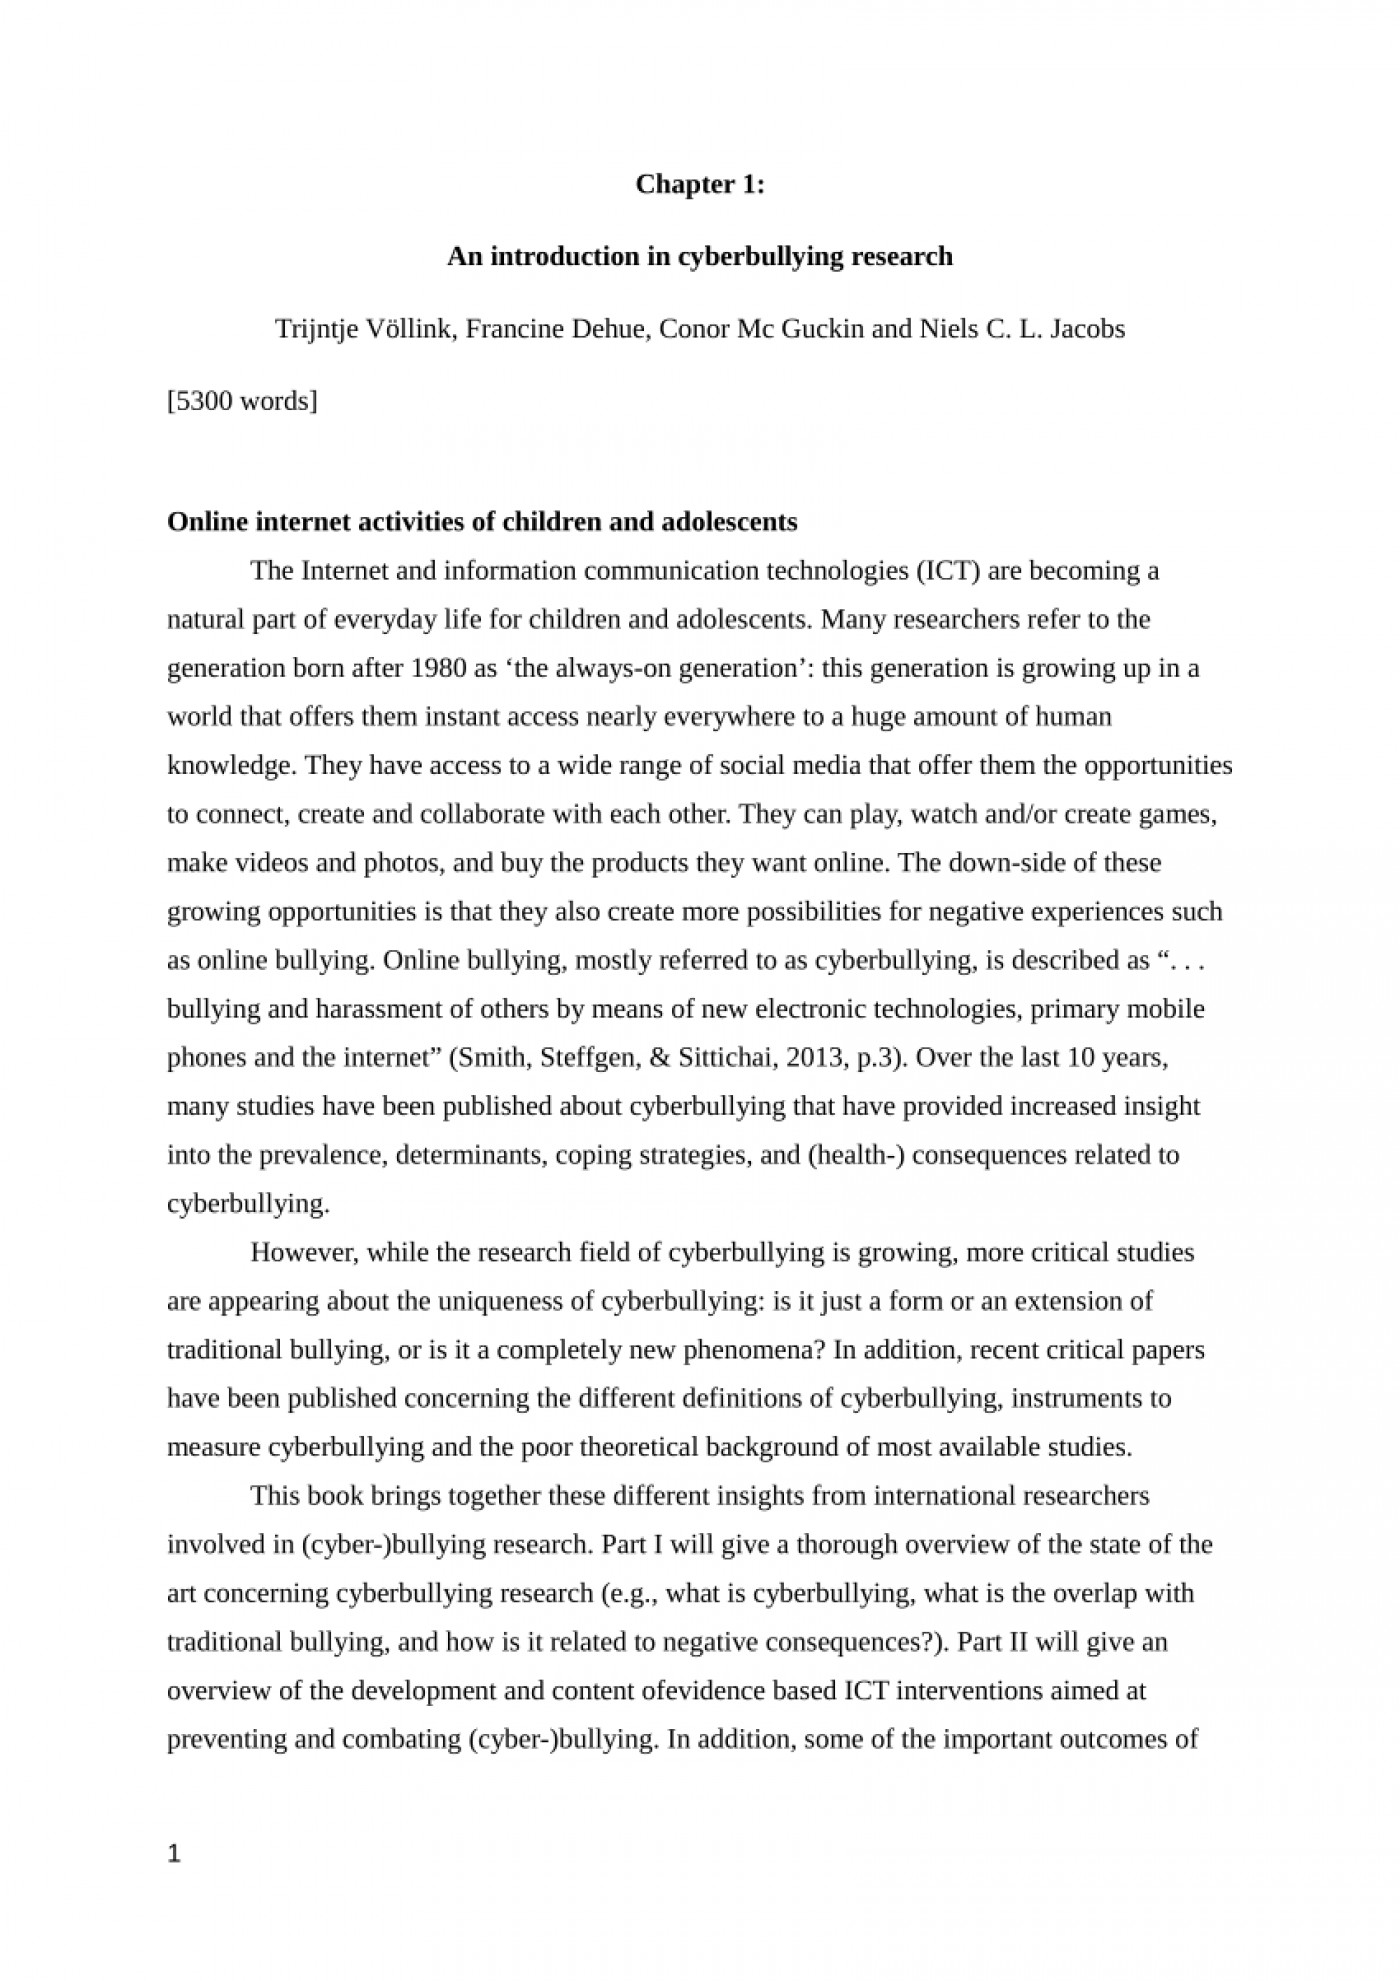 001 Research Paper Cyberbullying Introduction Magnificent Cyber Bullying Paragraph About Background Of The Study 1400